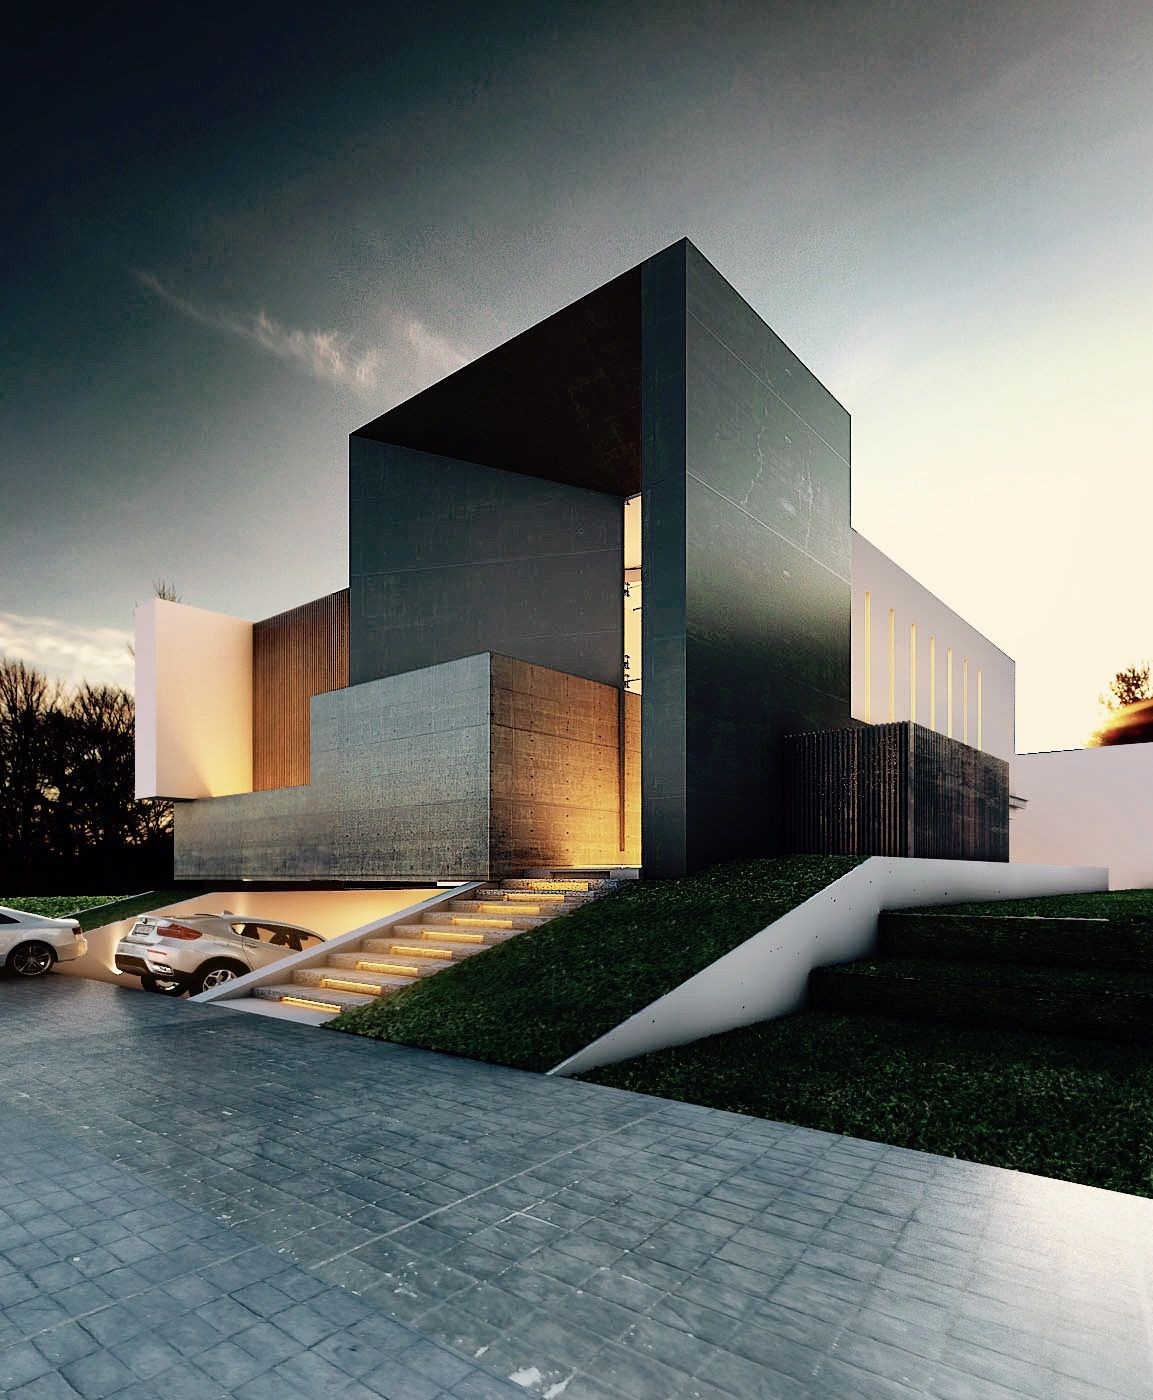 Architectural Designs For Modern Houses: Architecture & Design